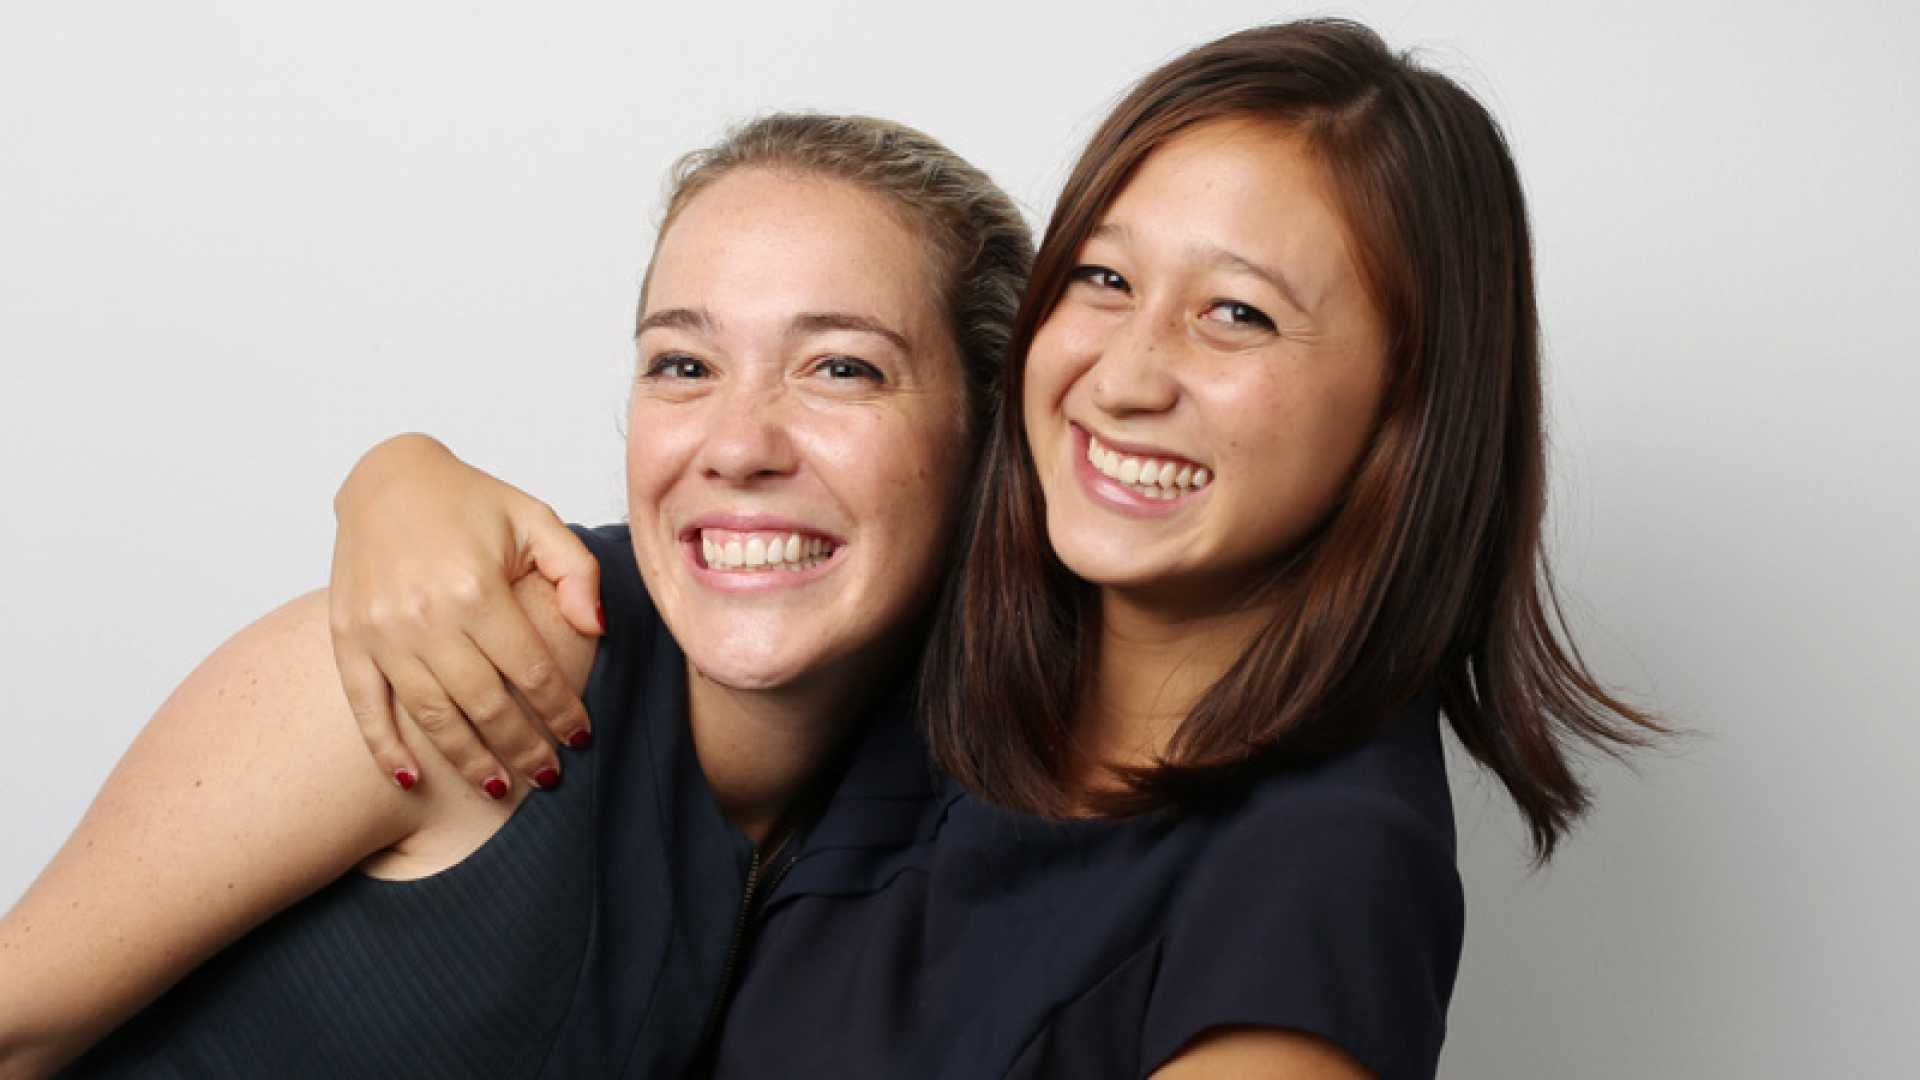 Renee Robbie (right) and Giorgia Rossi (left) became fast friends as consultants in McKinsey's Australian office. Today they are the co-founders of LookBooker, a startup that helps consumers book salon and spa appointments.